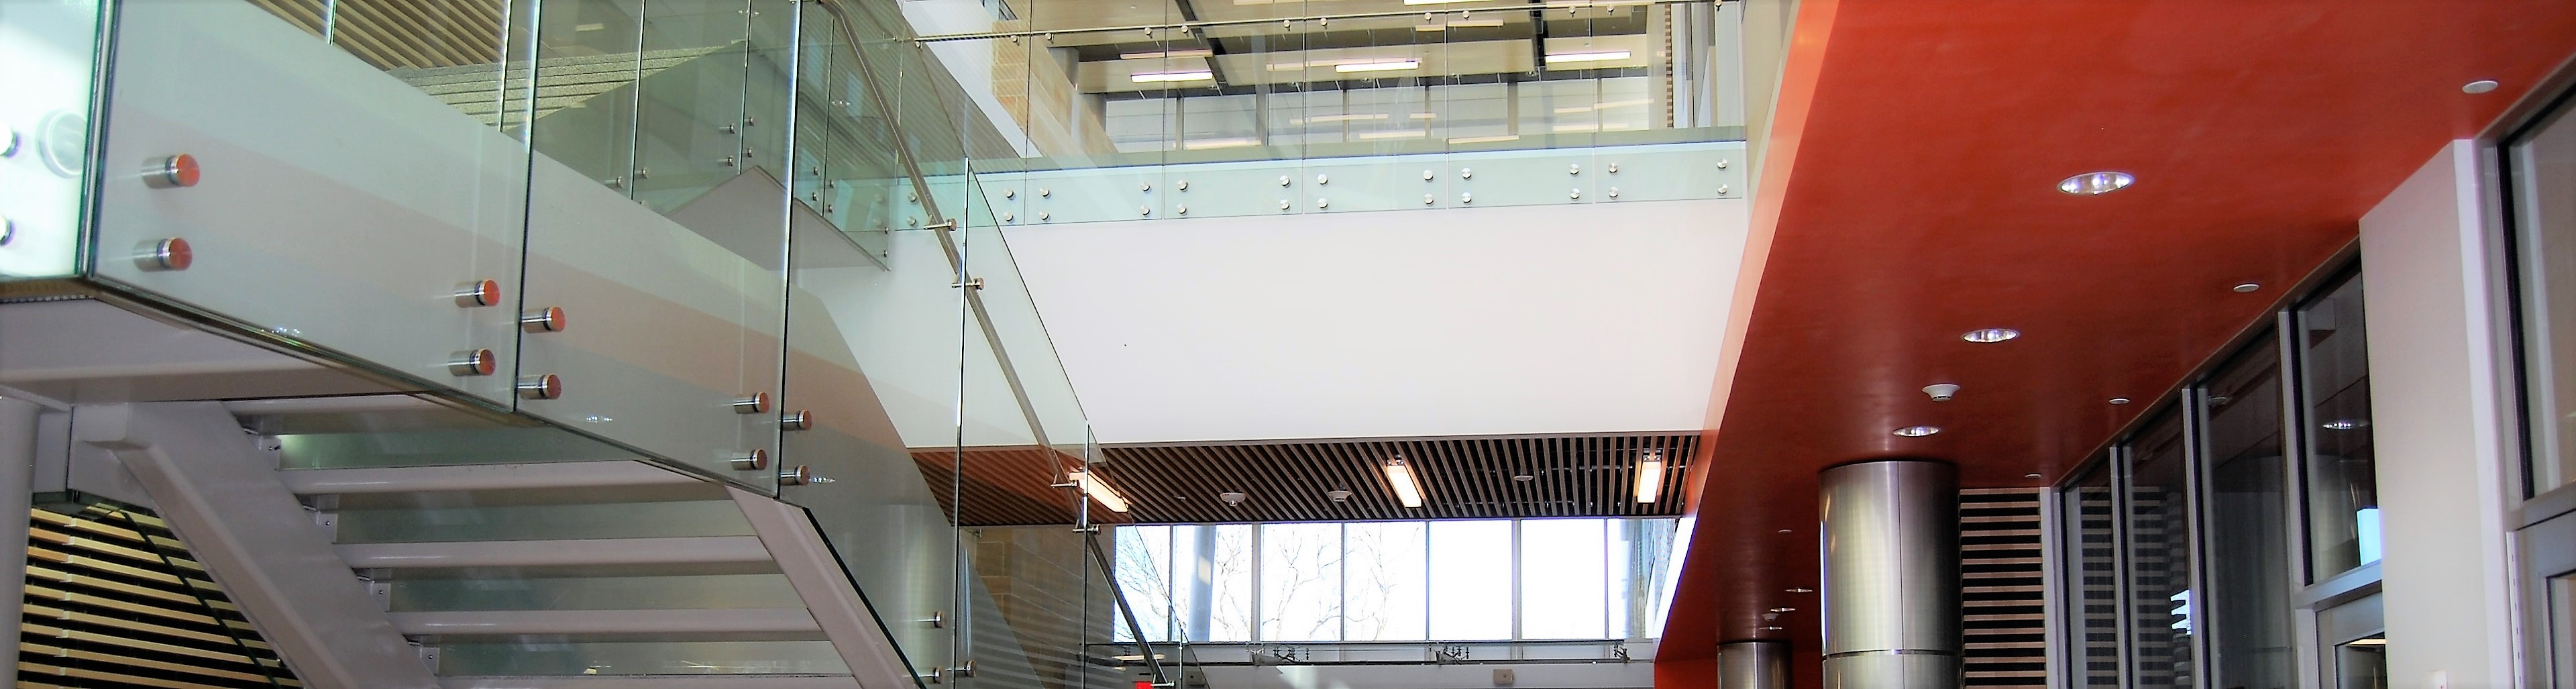 Wheaton Library installs Optik and Ferric railings in their new facility